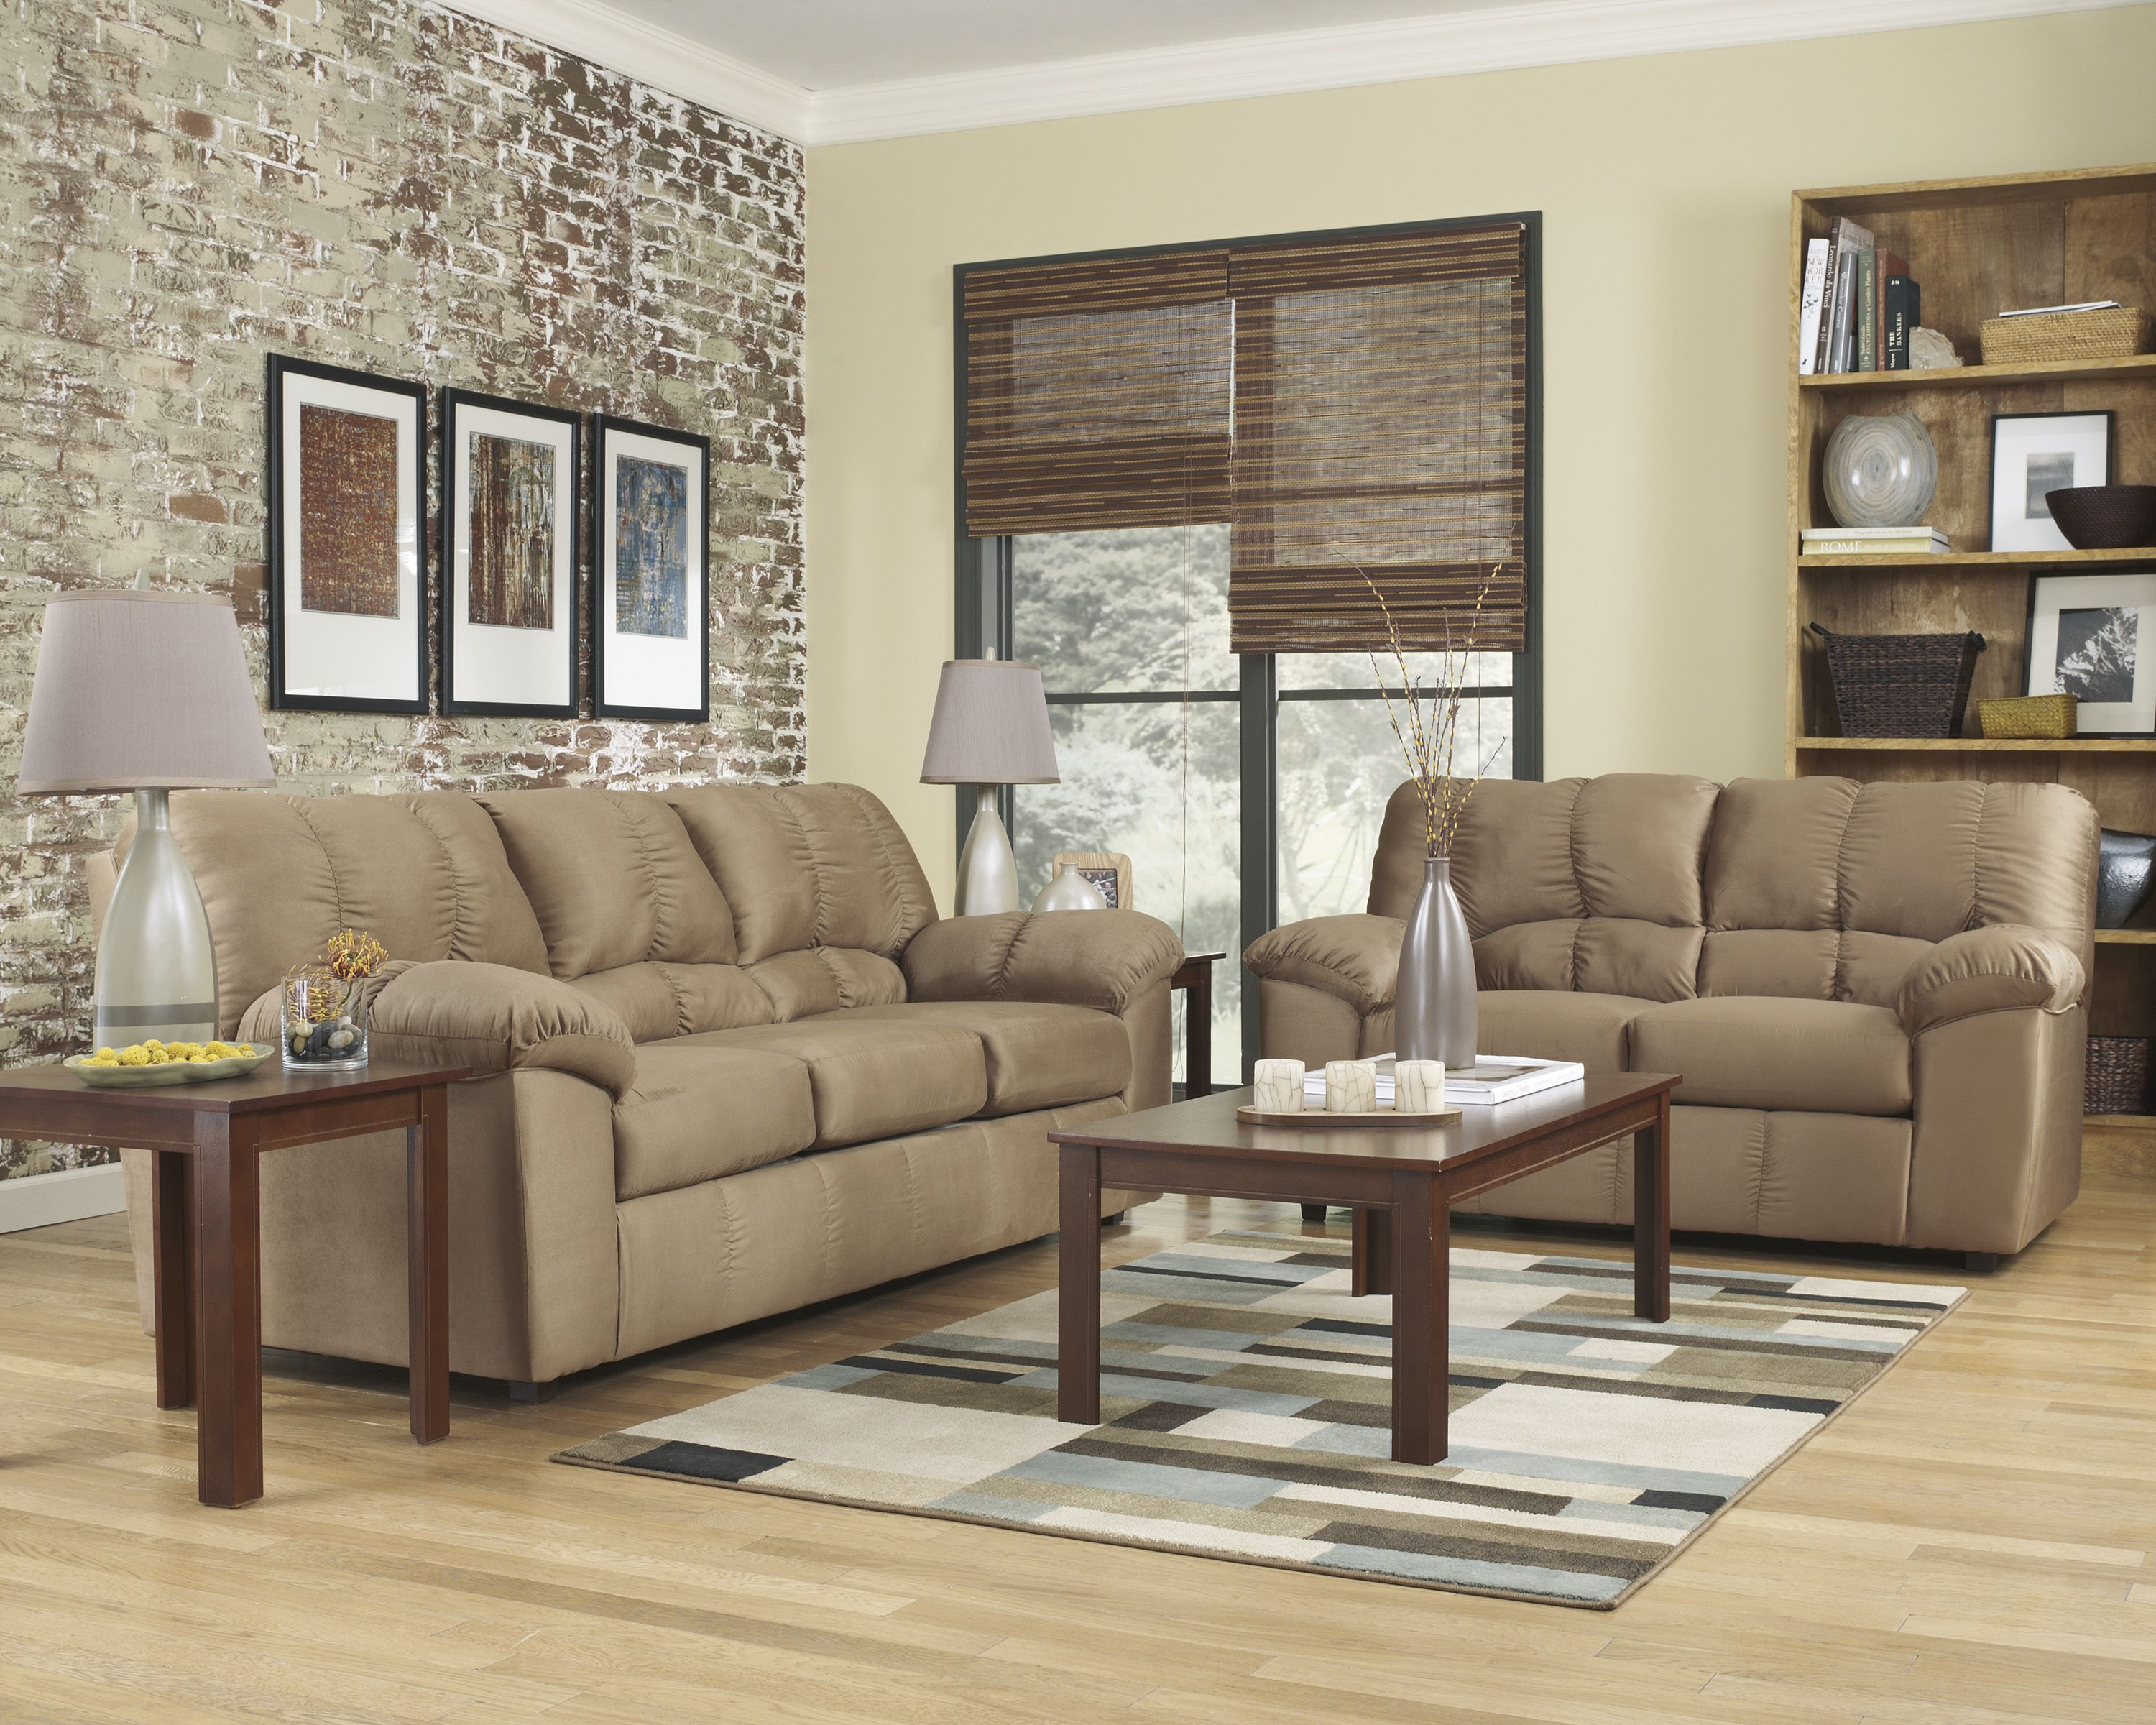 Ashley Furniture Microfiber Sofa and Love Seat for ONLY $595